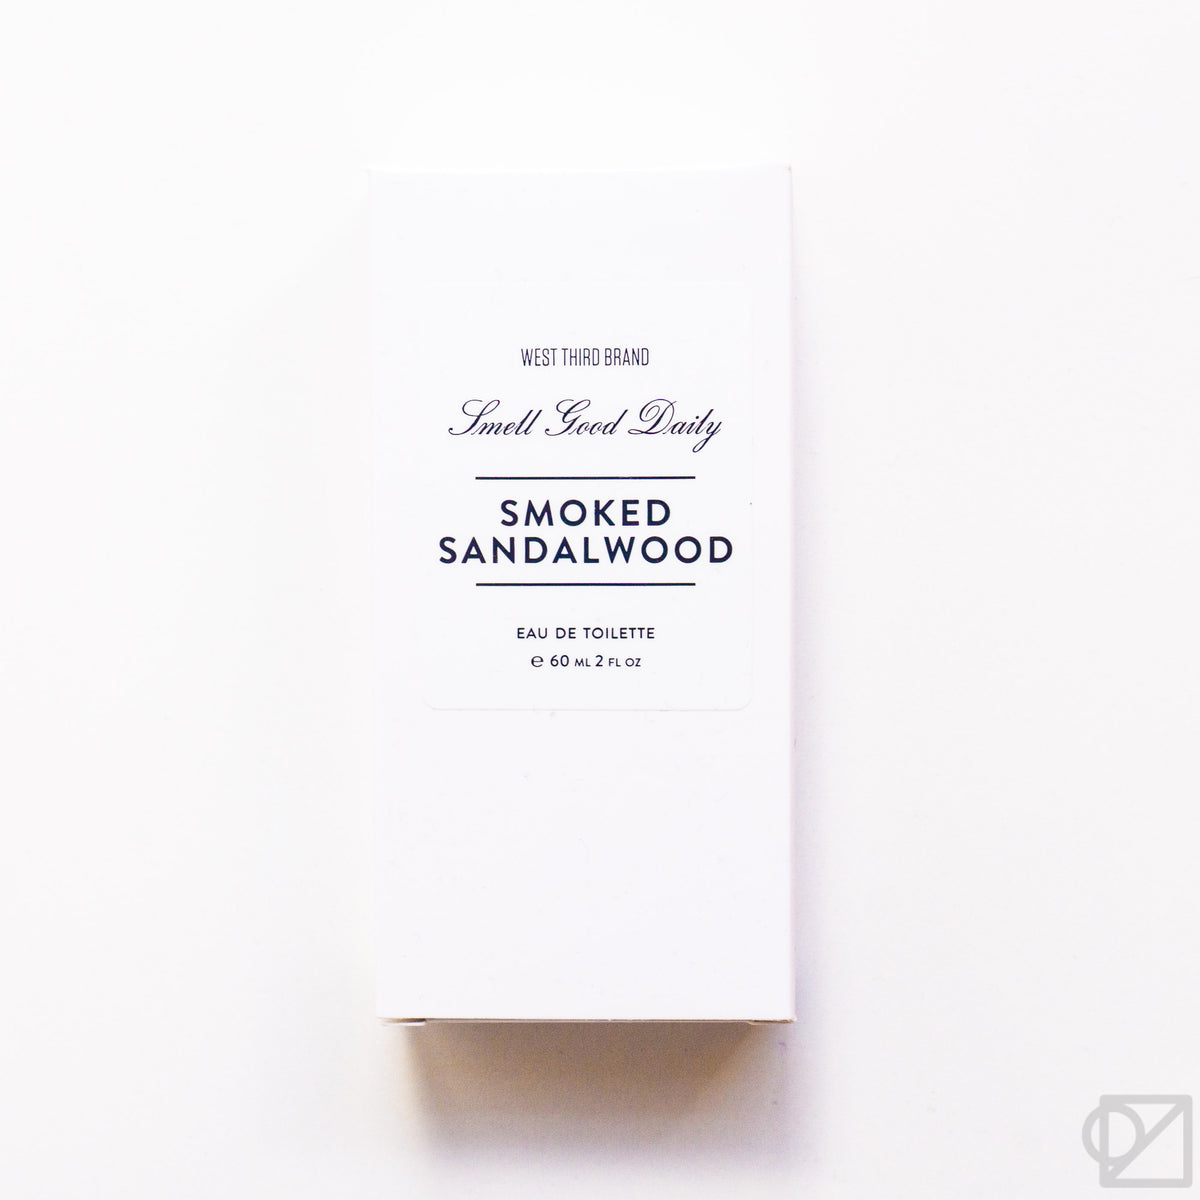 Smell Good Daily Tonic: Smoked Sandalwood